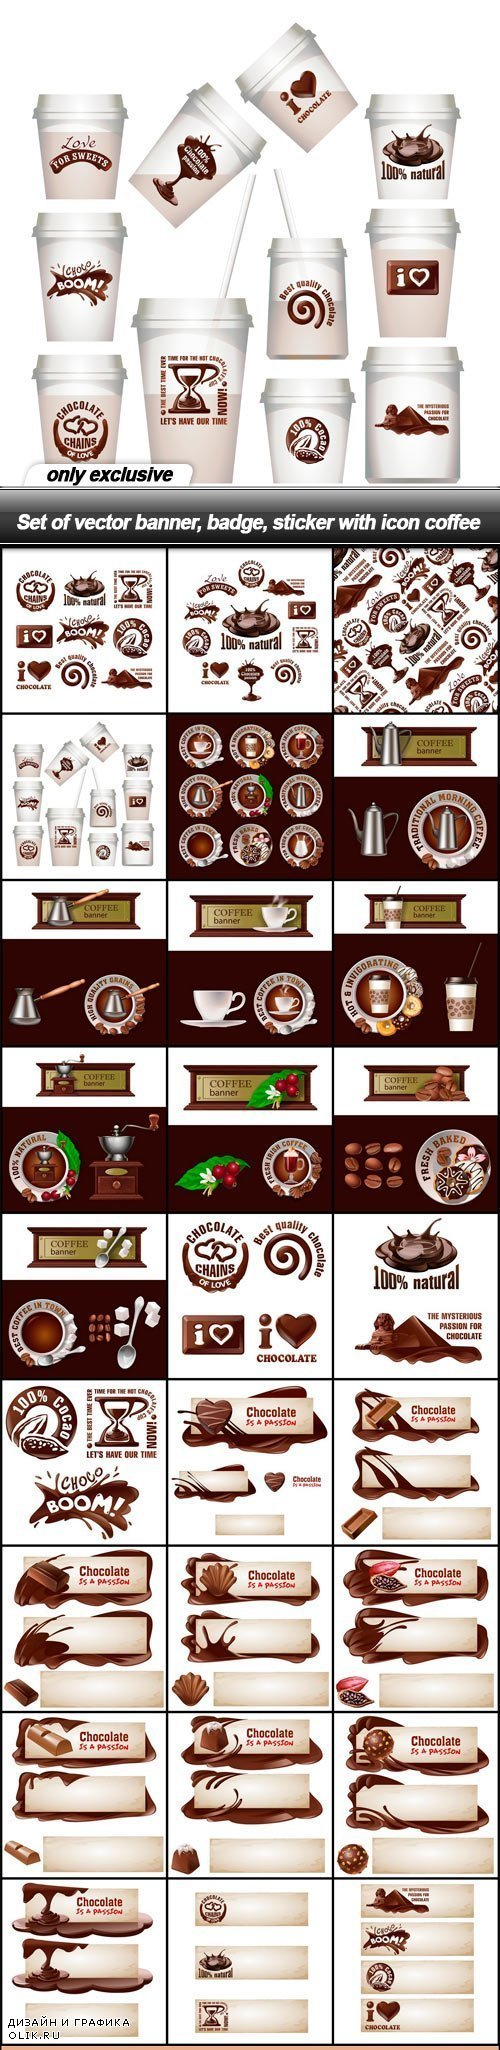 Set of vector banner, badge, sticker with icon coffee - 30 EPS